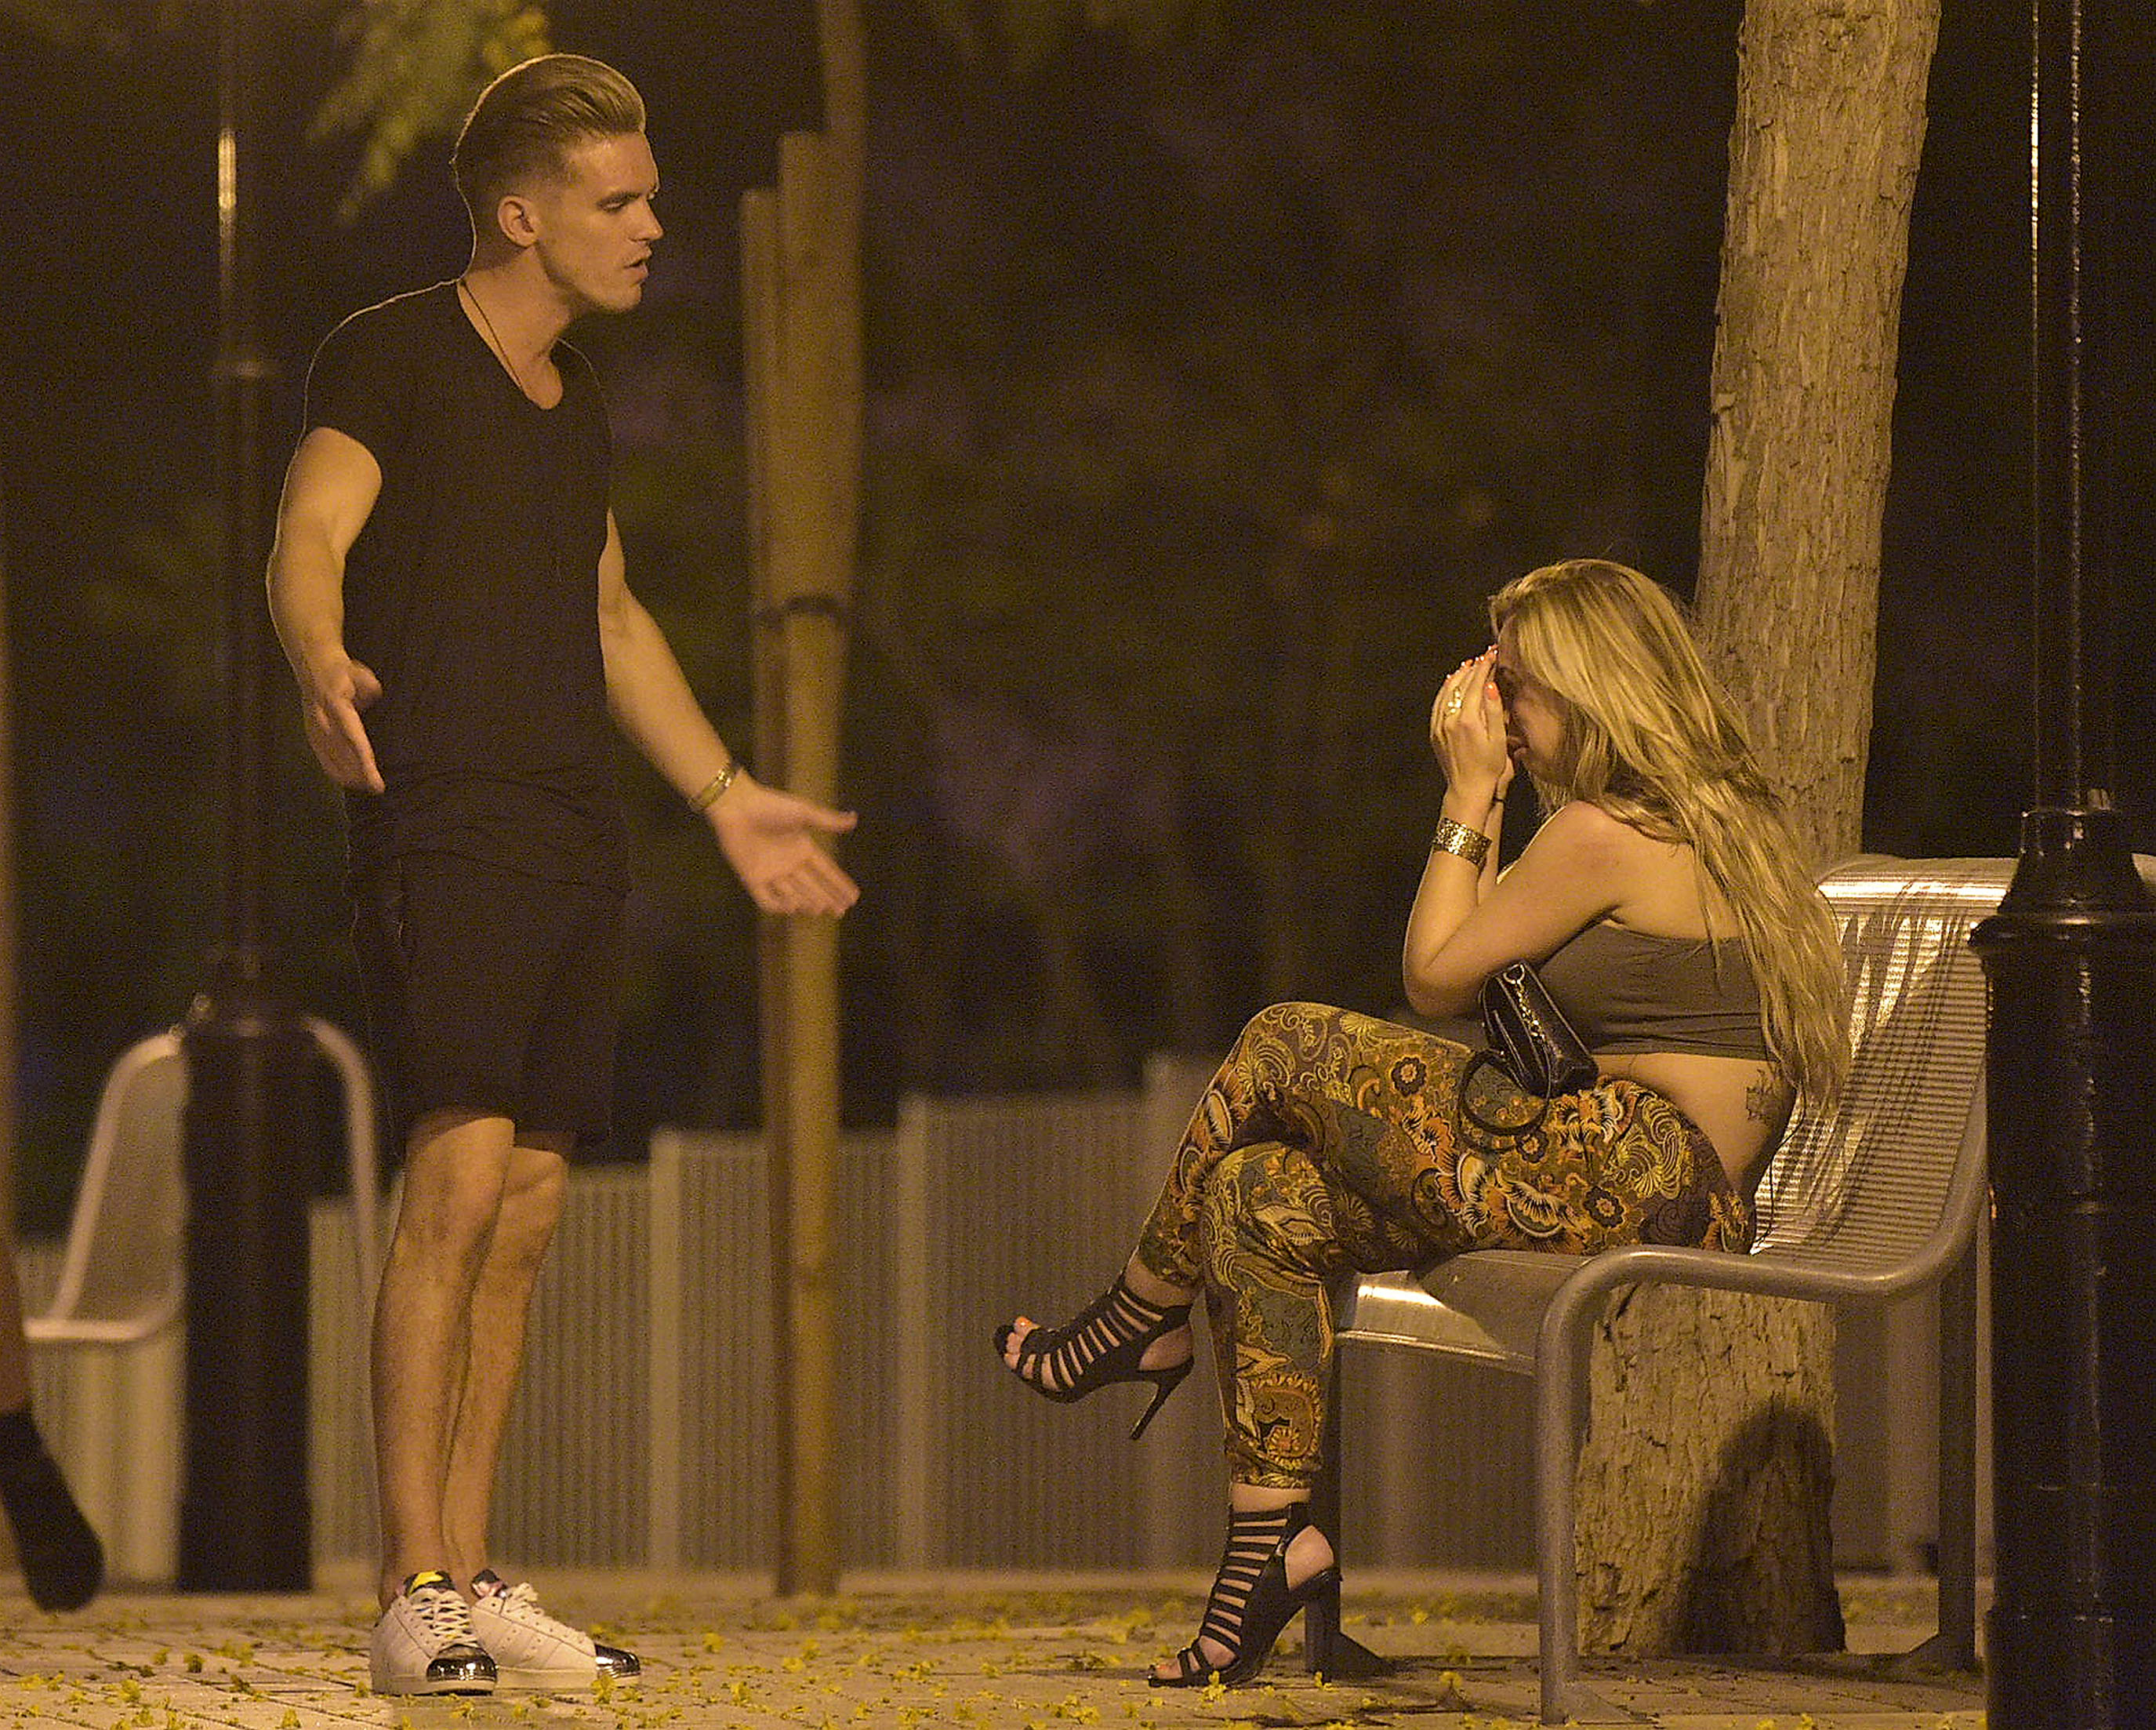 Holly Hagan and Gaz Beadle in Marbella